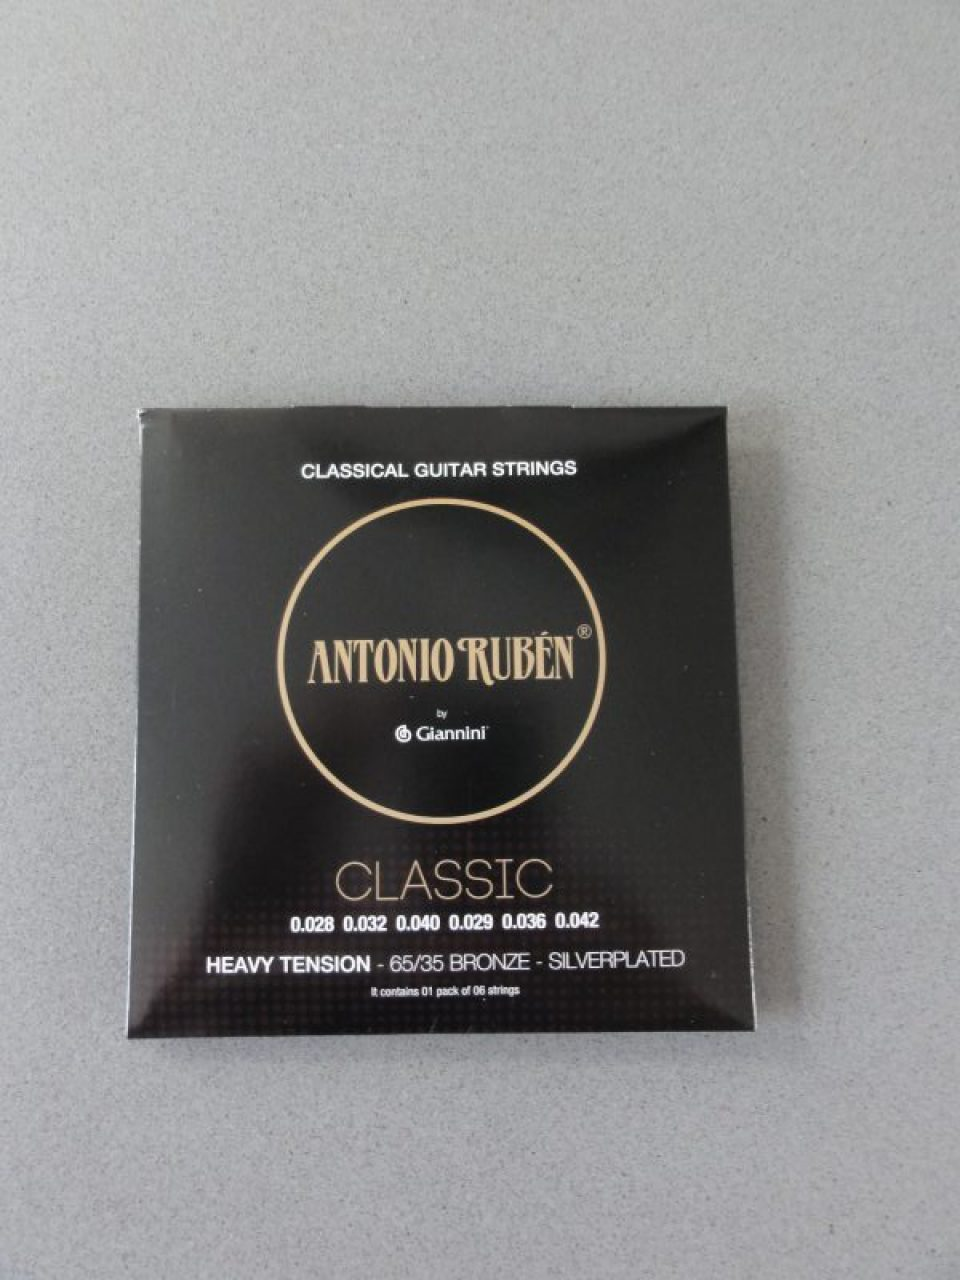 Ruben Classical Strings Heavy Tension,Silverplated 65/35 Bronze